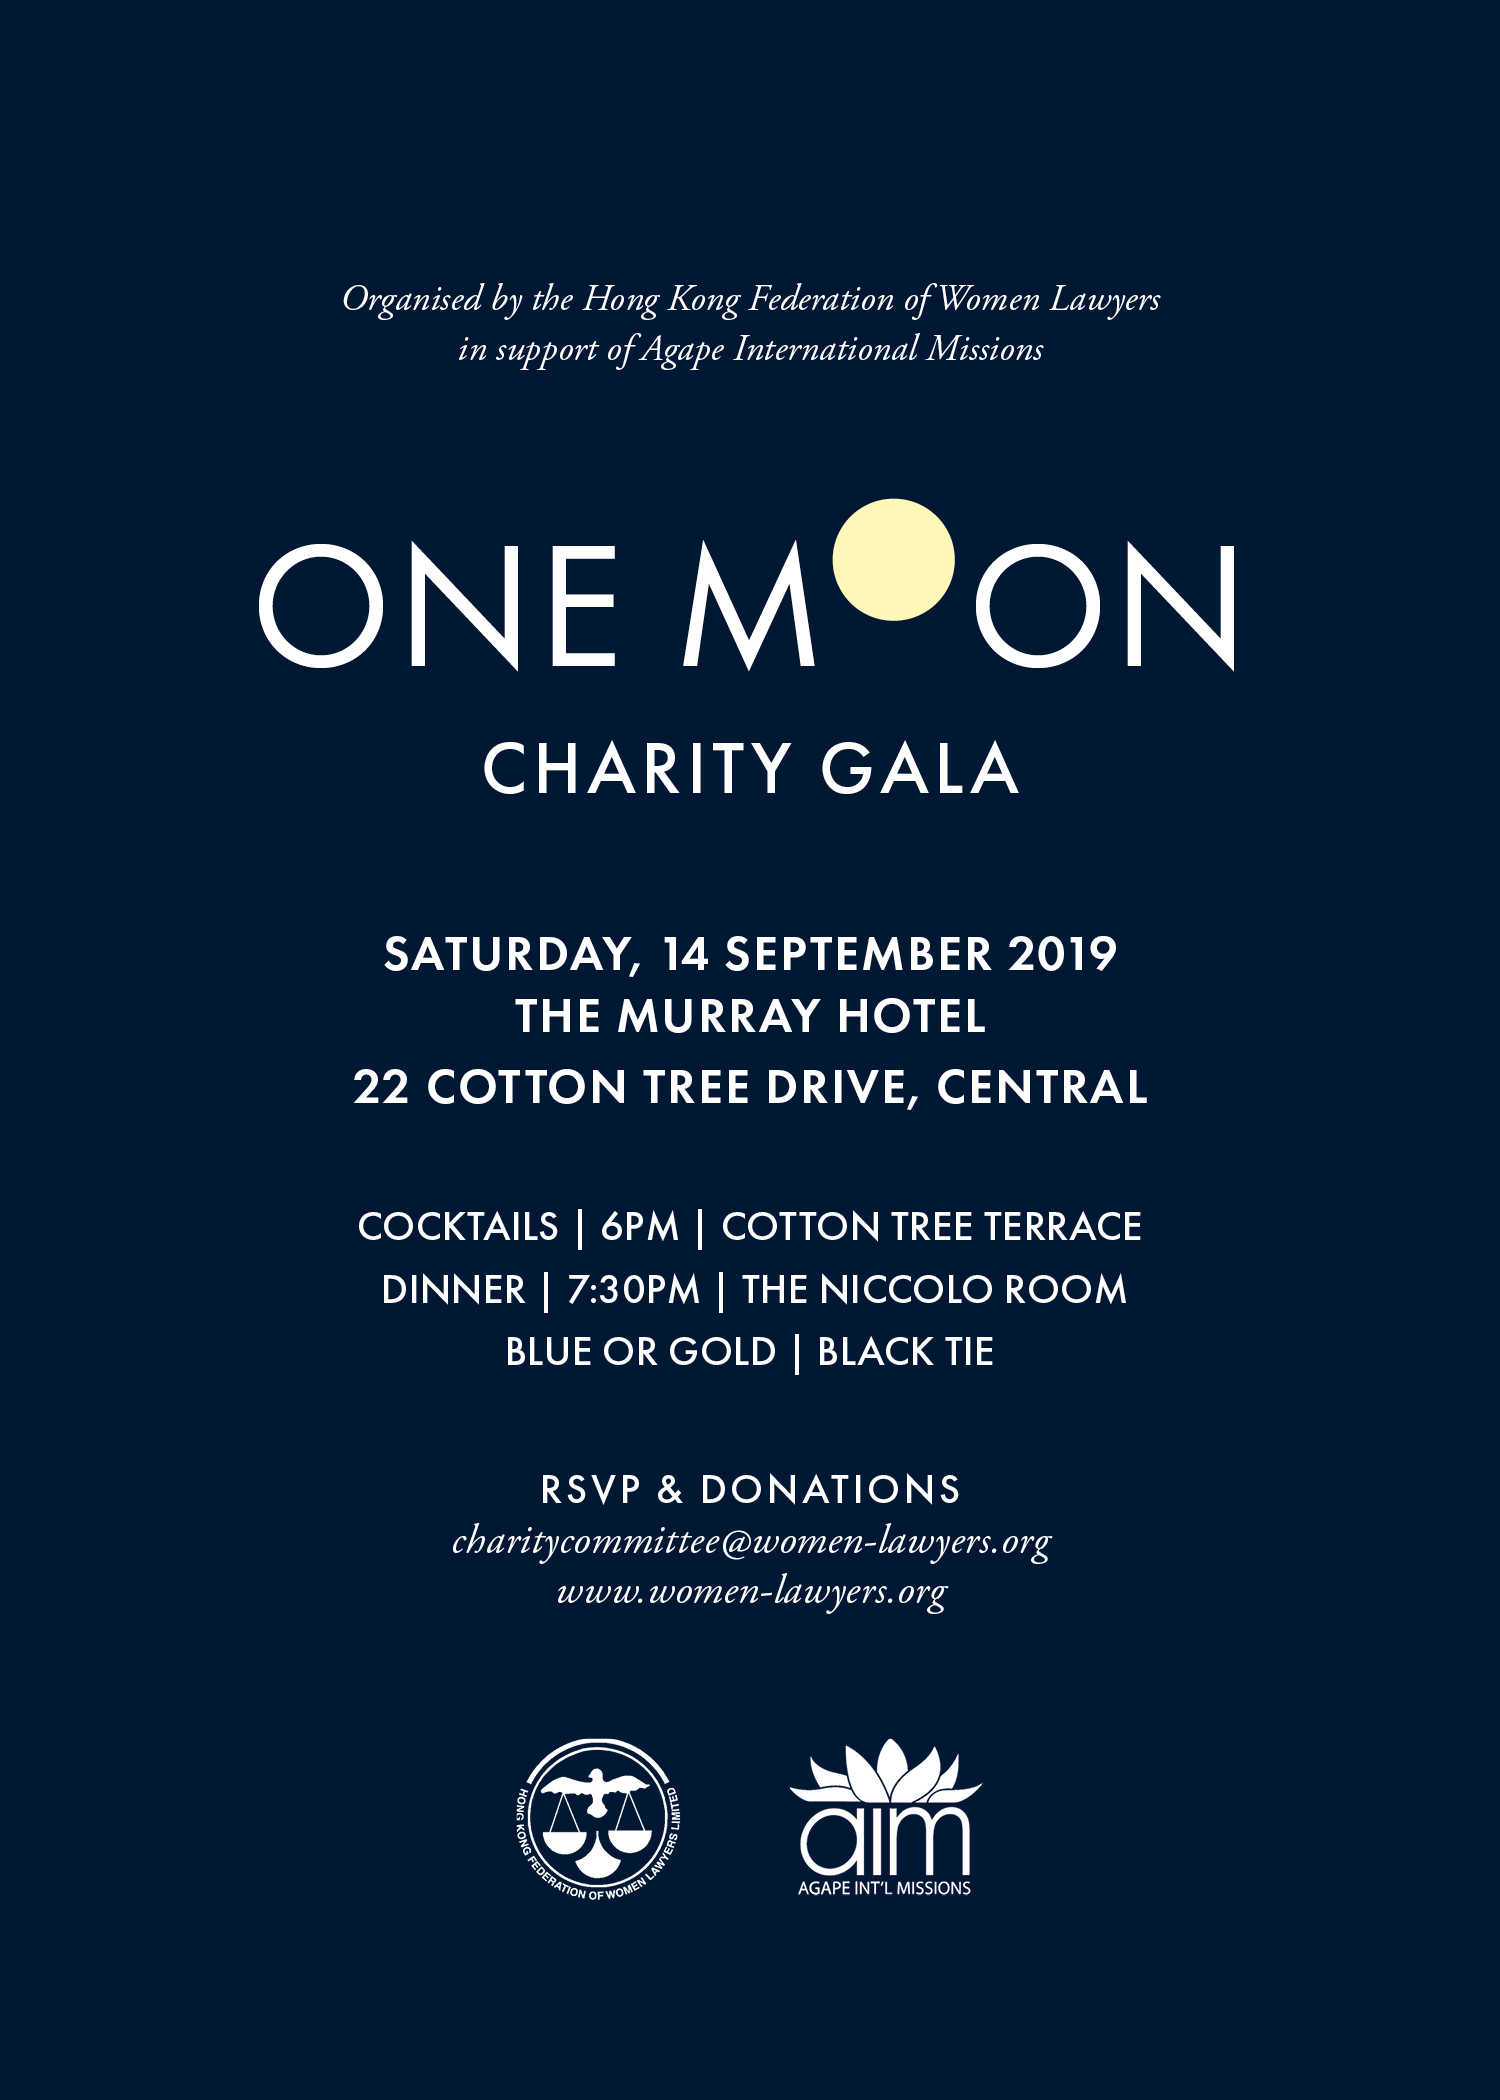 Event invite for a charity gala